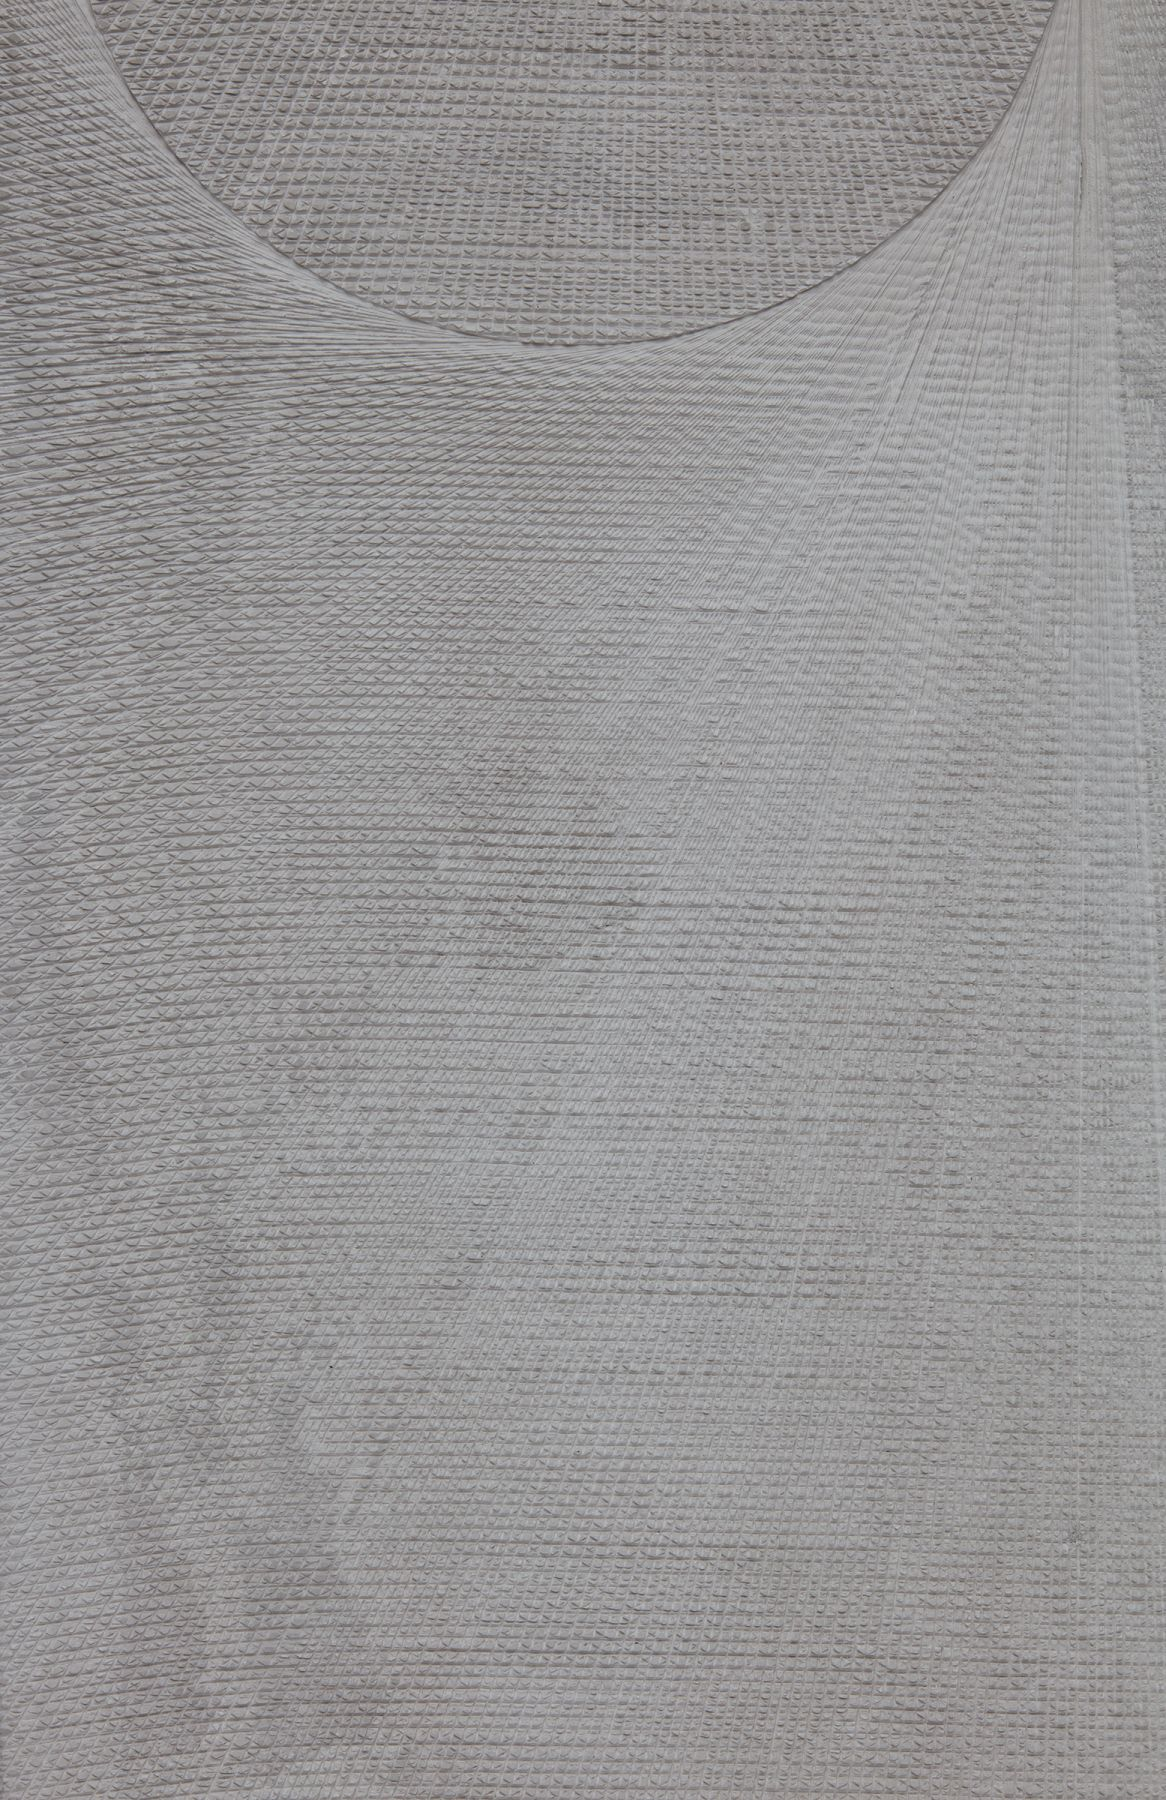 a detail of the texture on an etched plaster artowrk by anthony pearson